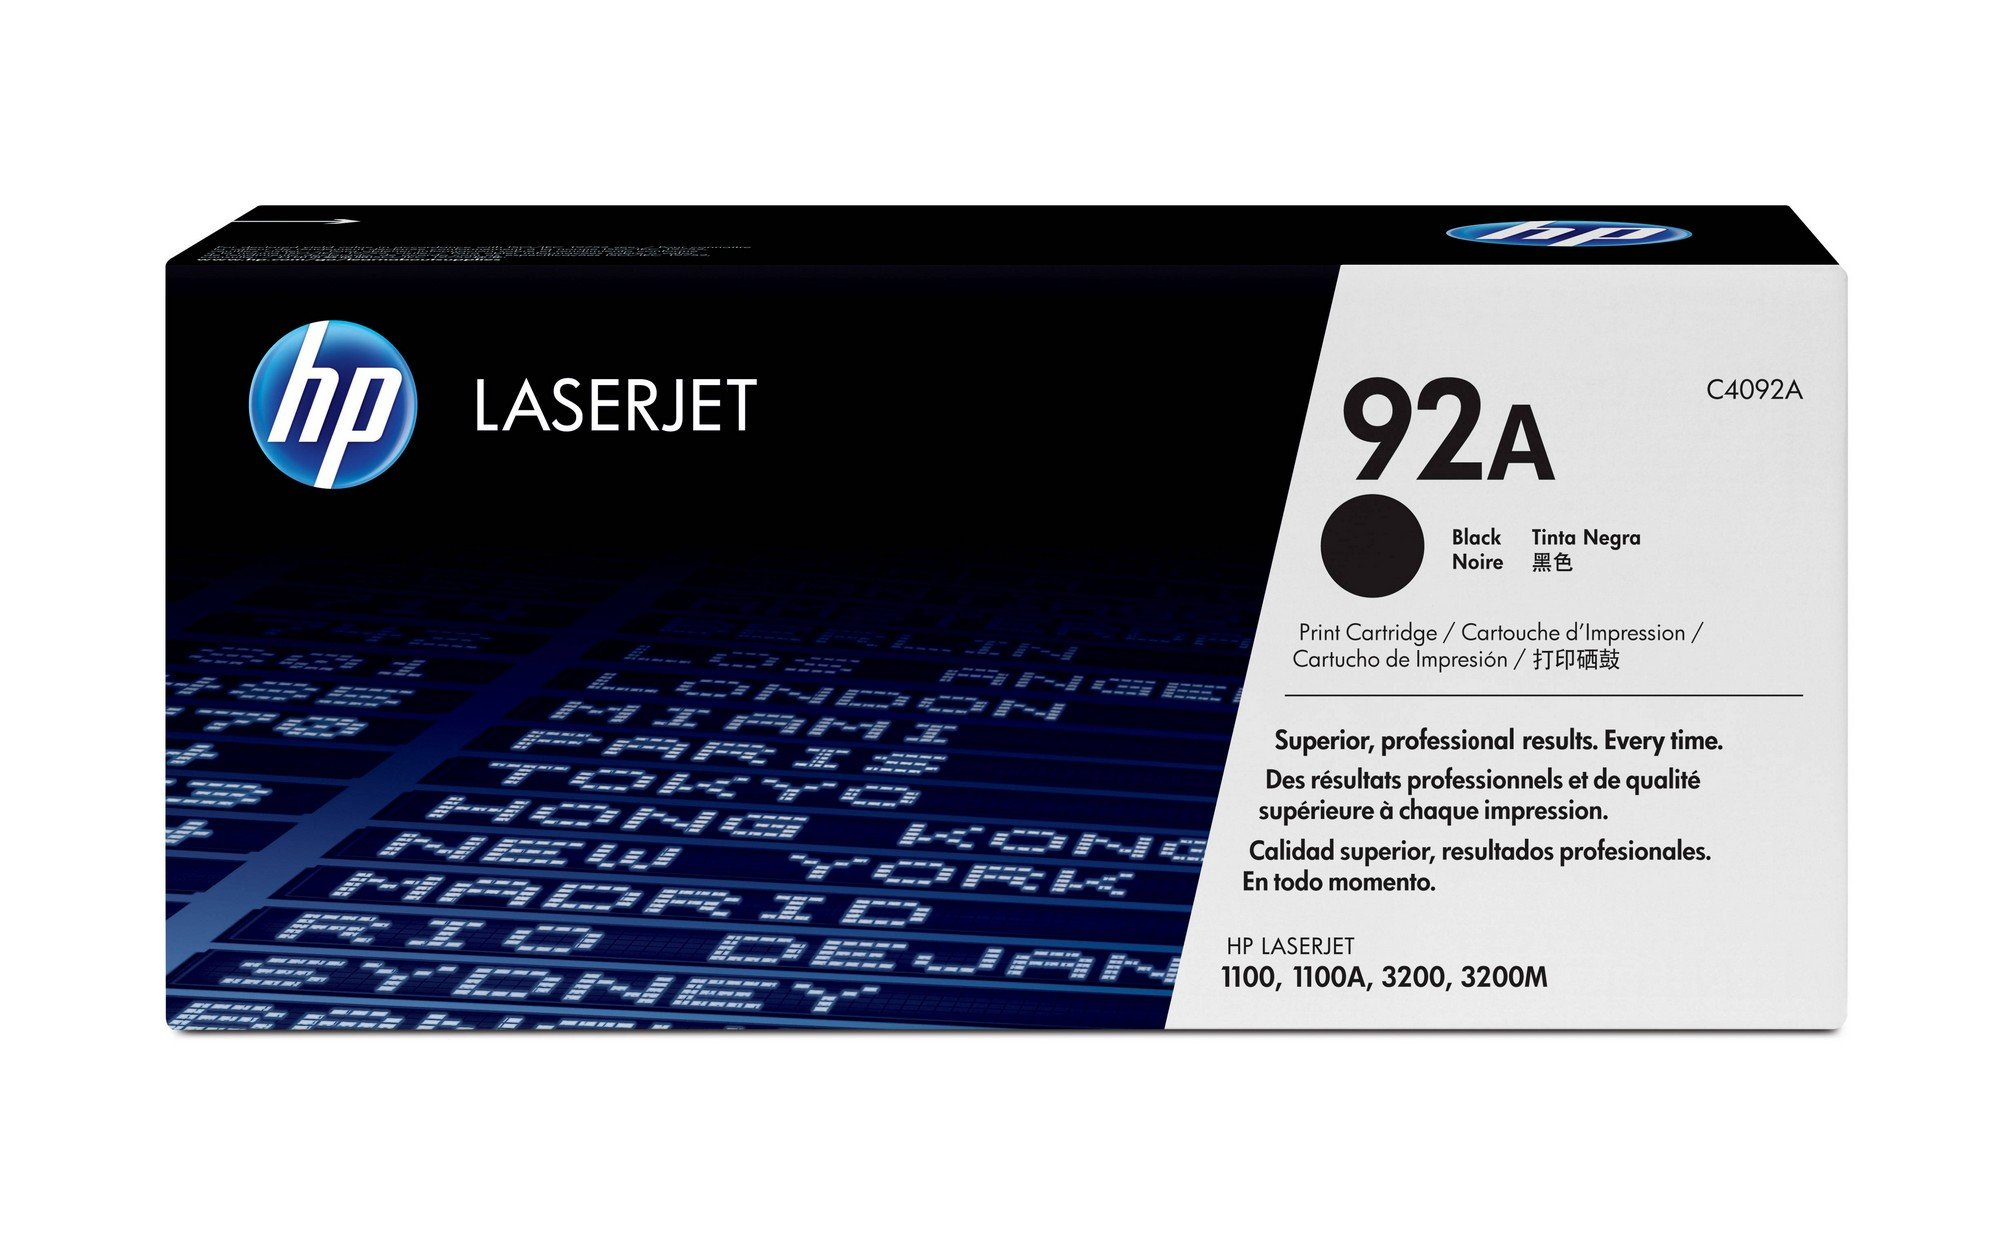 HP 92A (C4092A) Black Original LaserJet Toner Cartridge DISCONTINUED BY MANUFACTURER